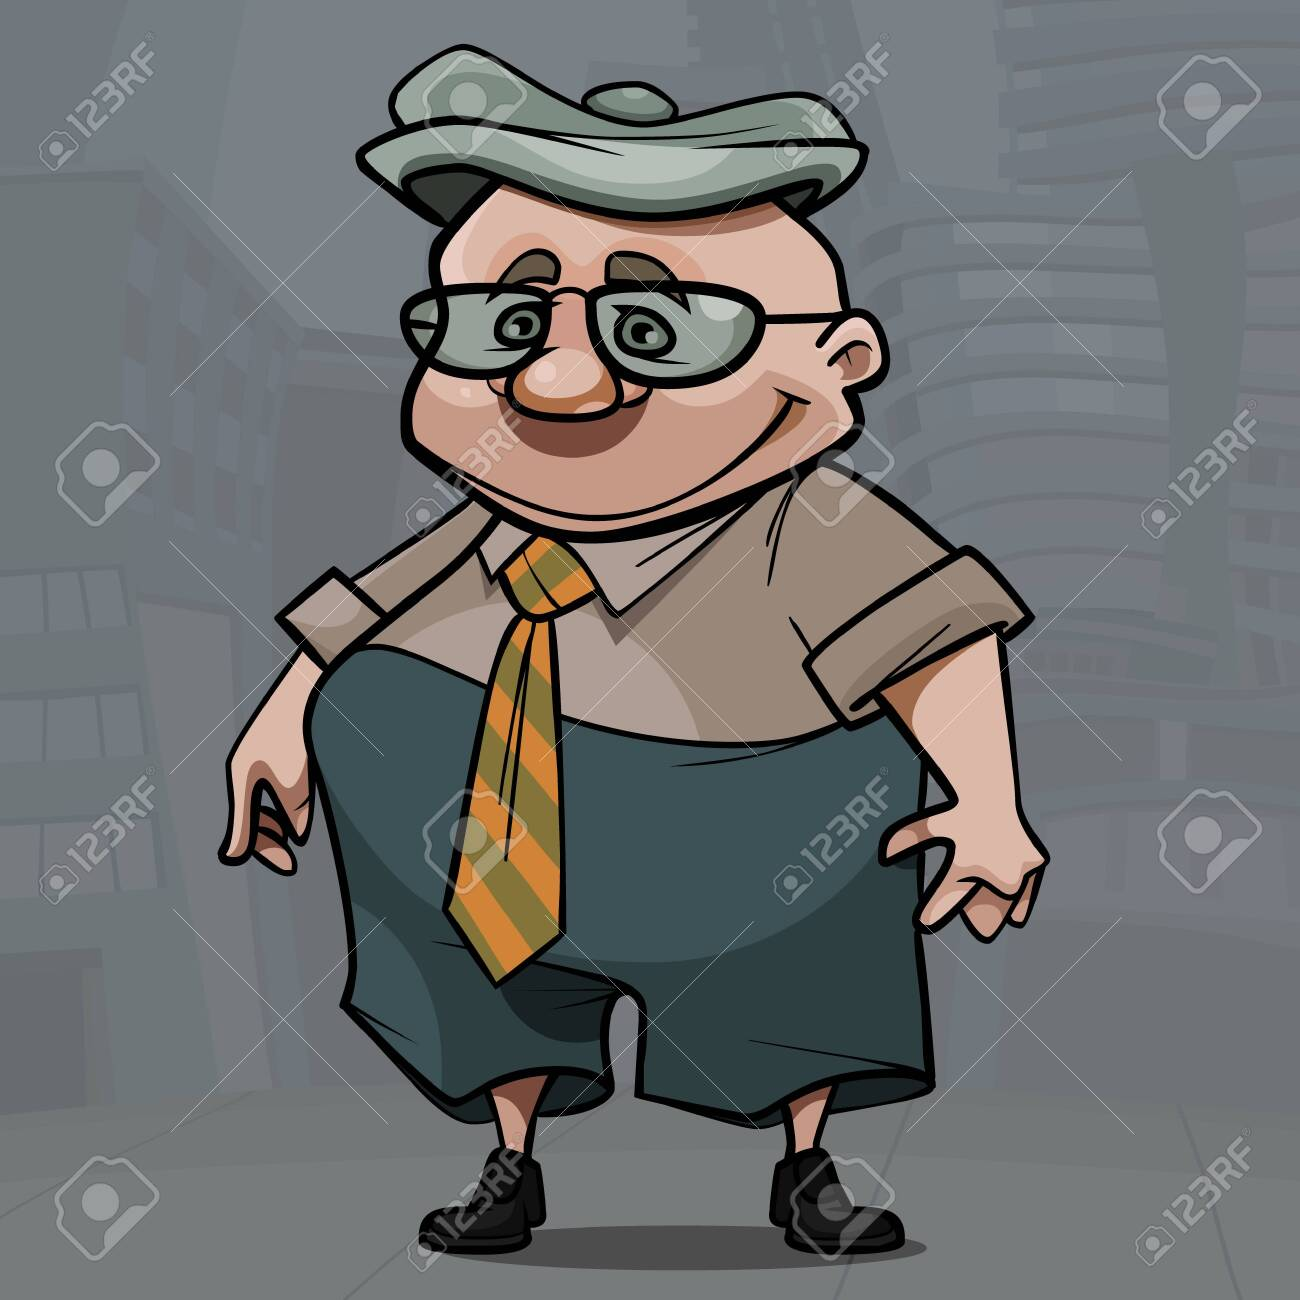 cartoon smiling elderly man with glasses and cap - 151256303